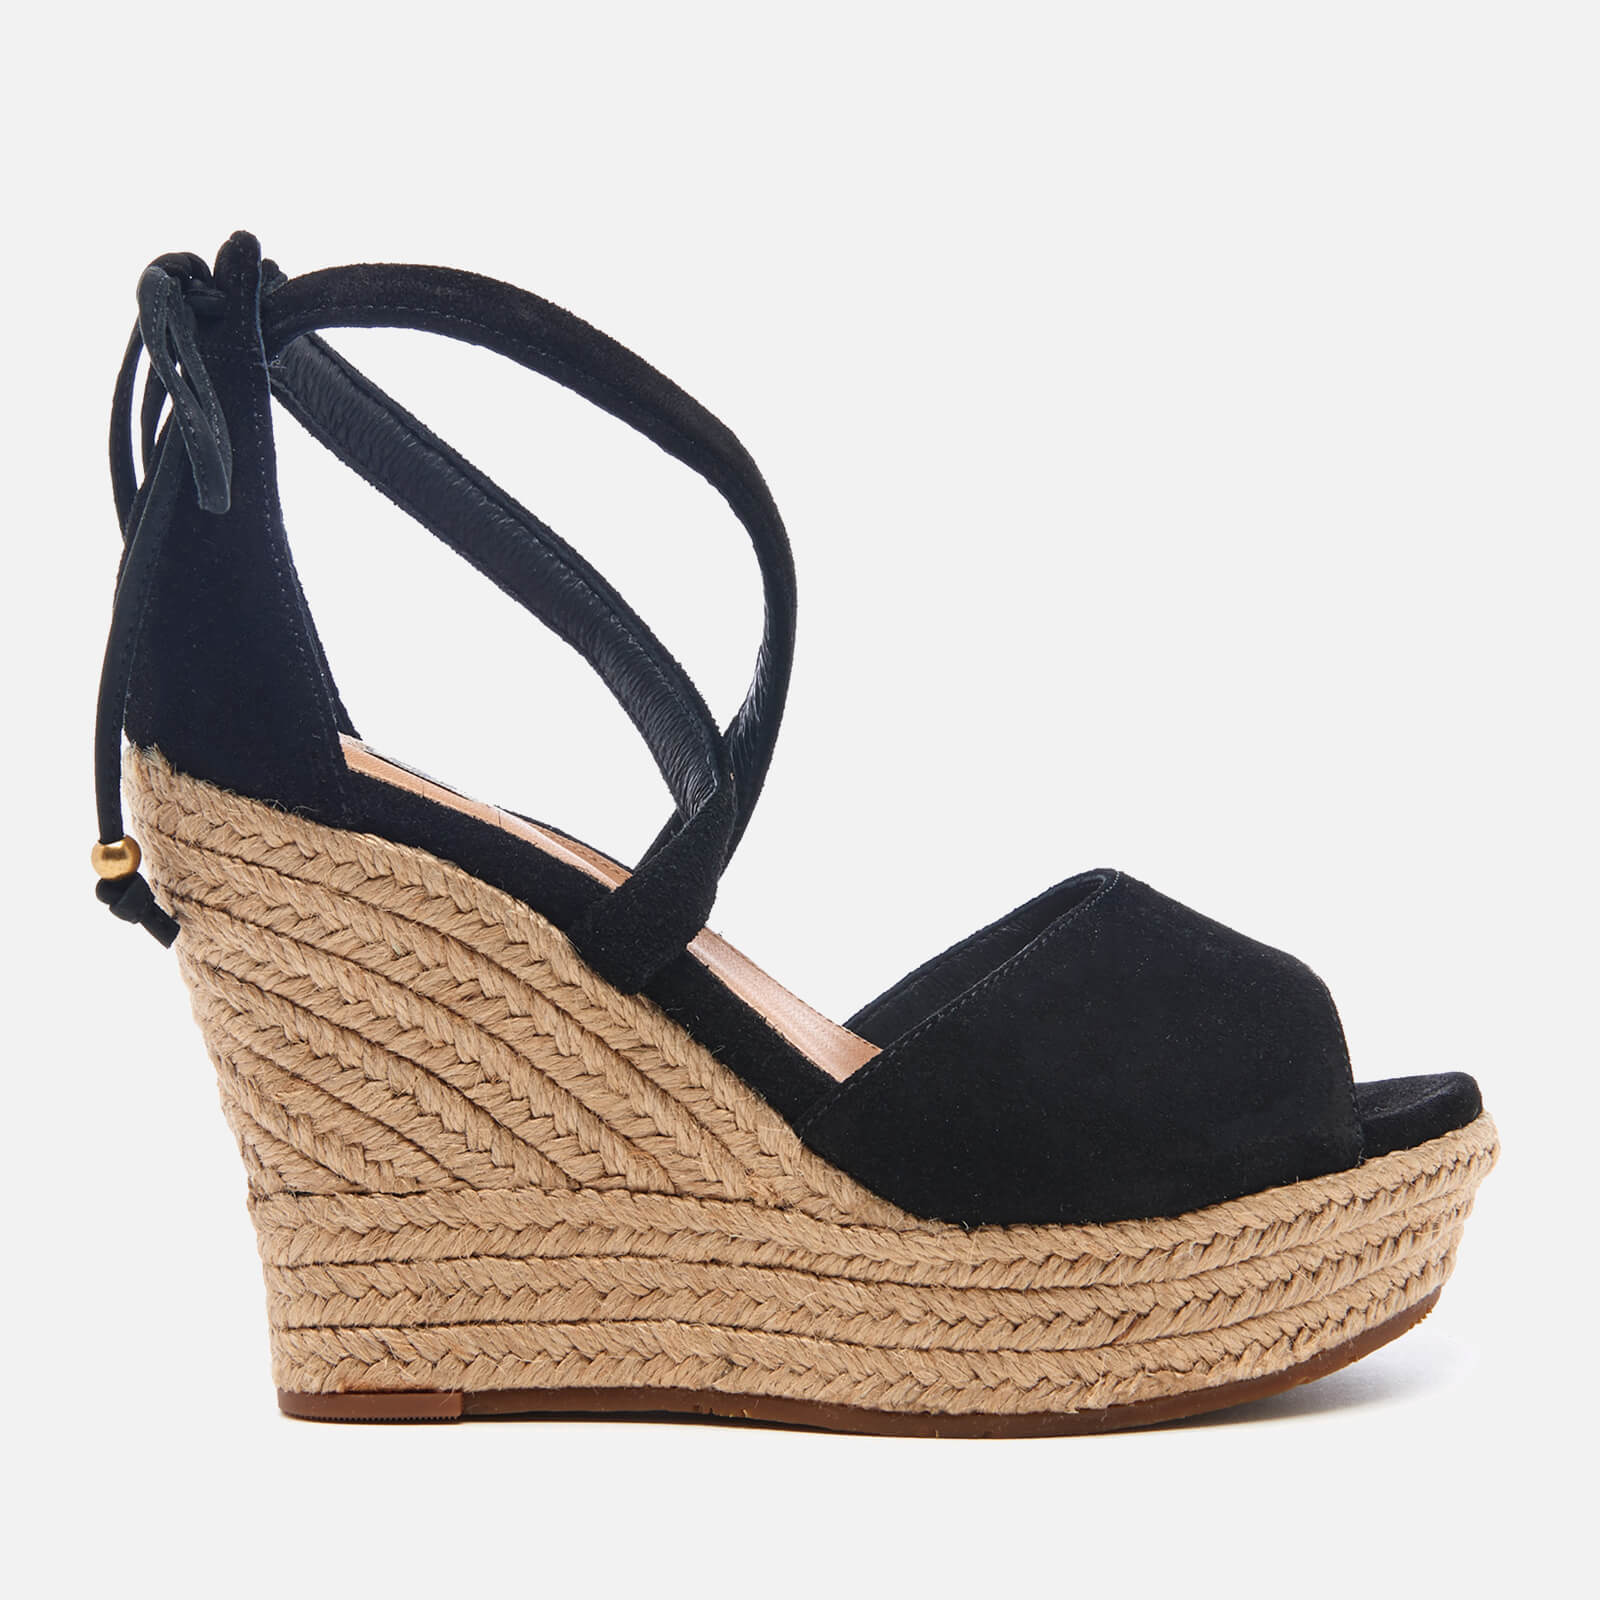 a56a3170e6b UGG Women's Reagan Suede Ankle Tie Jute Wedged Sandals - Black